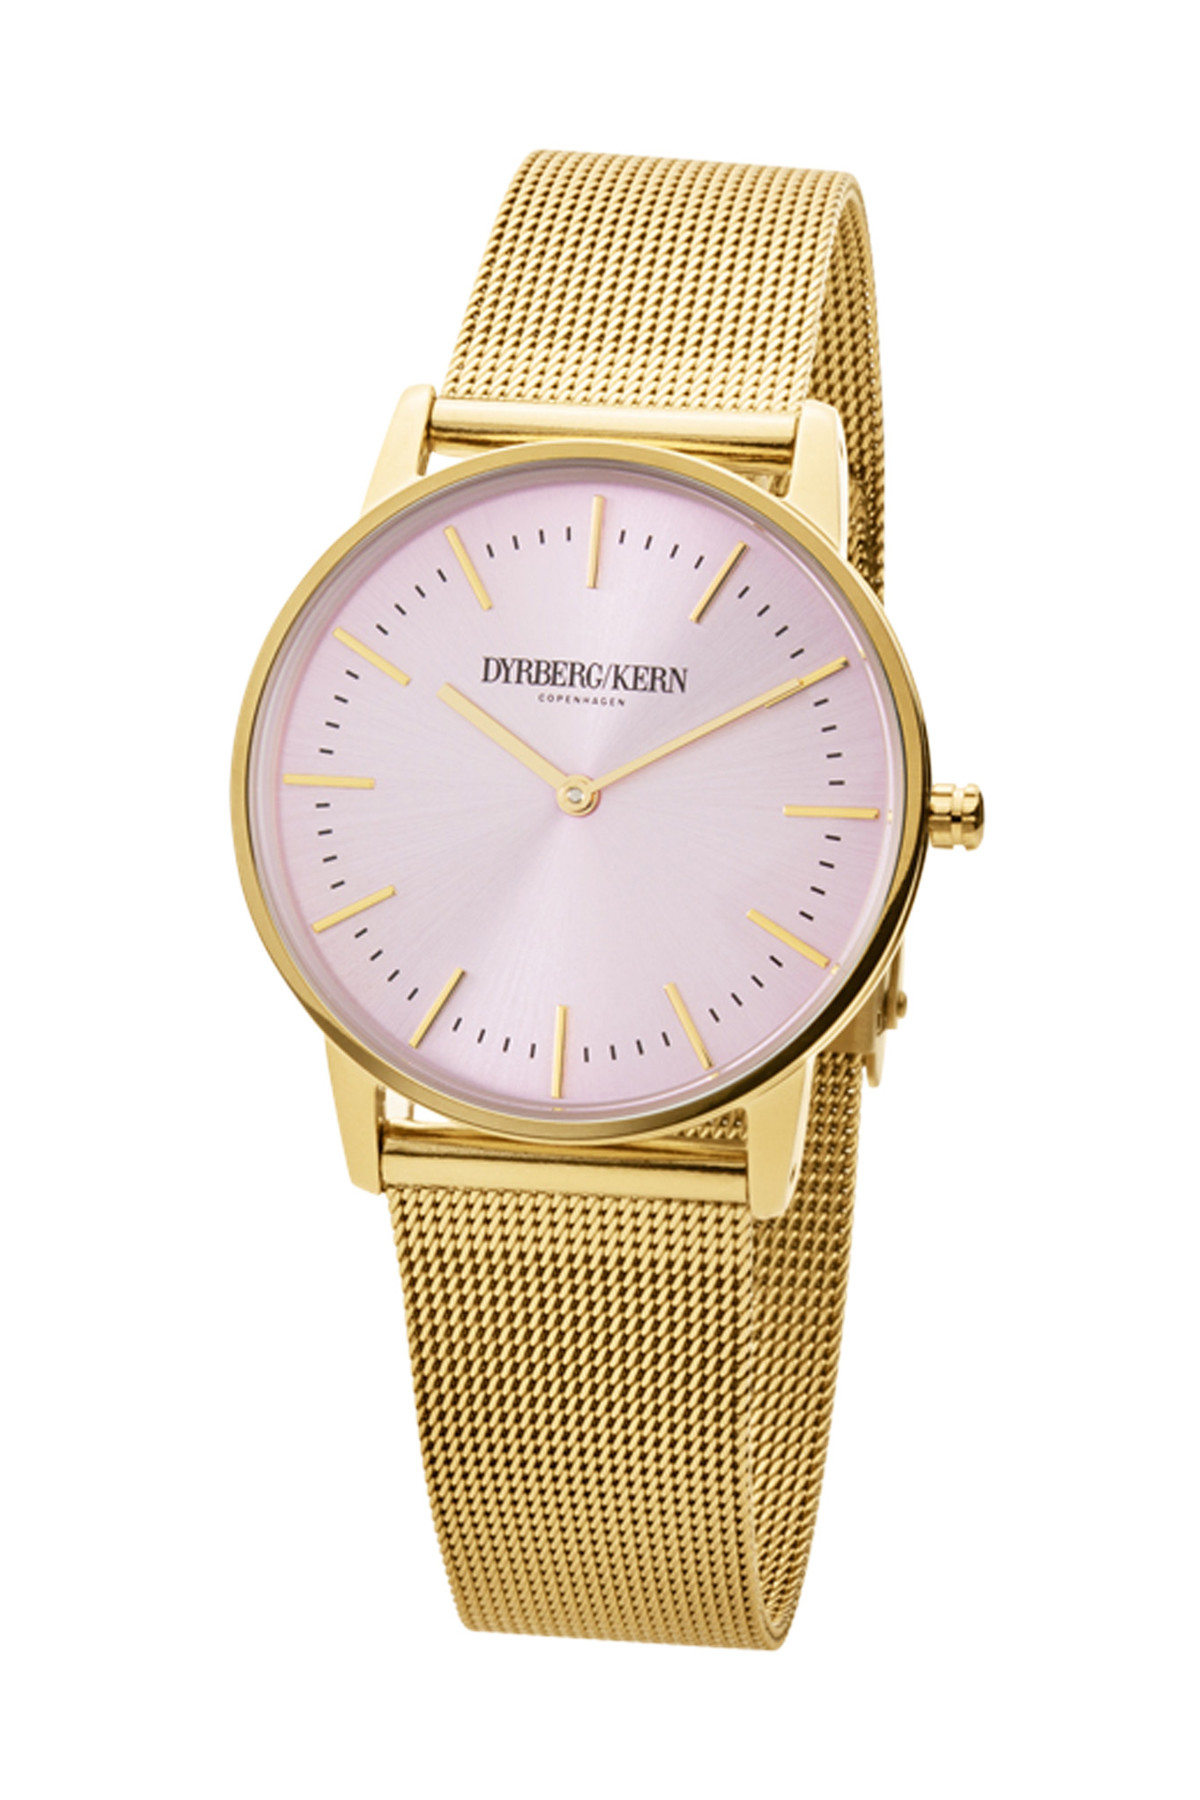 DYRBERG/KERN PRIMARY WATCH 350764